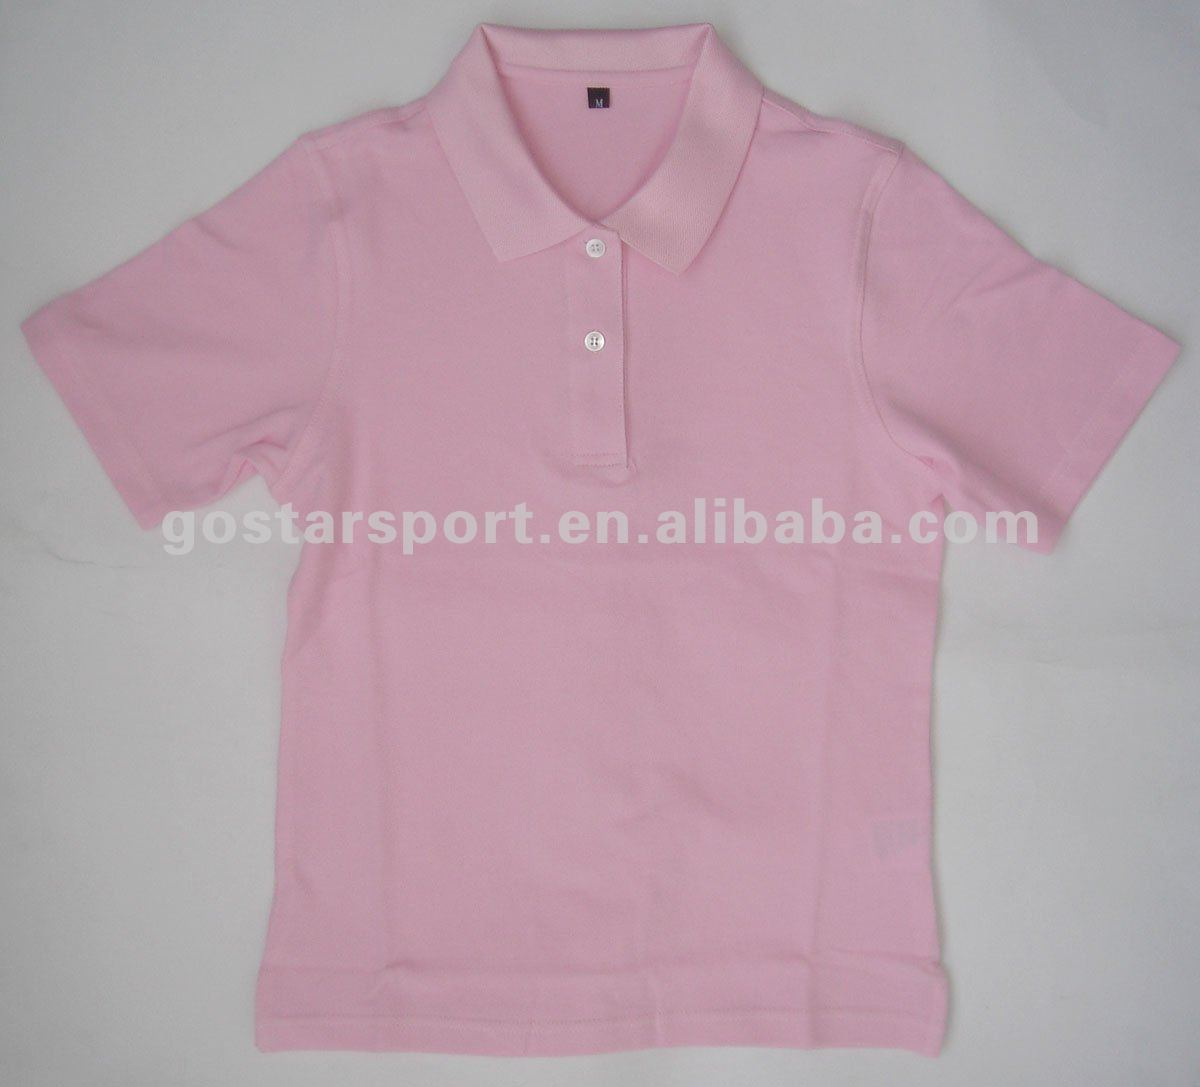 100% Cotton Golf Polo Shirt